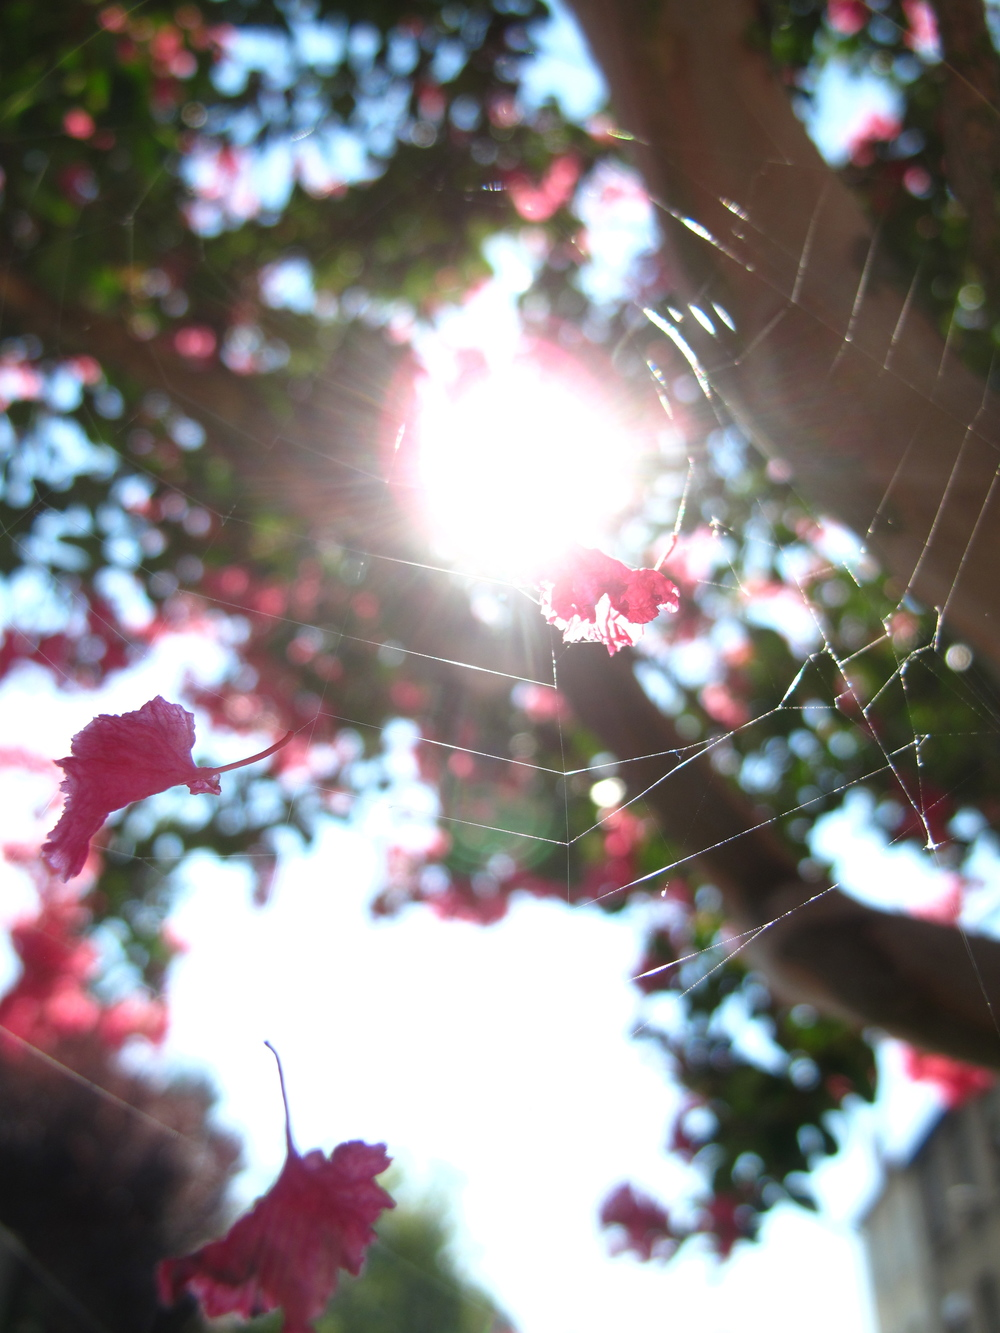 pink petals caught in a spider's web.